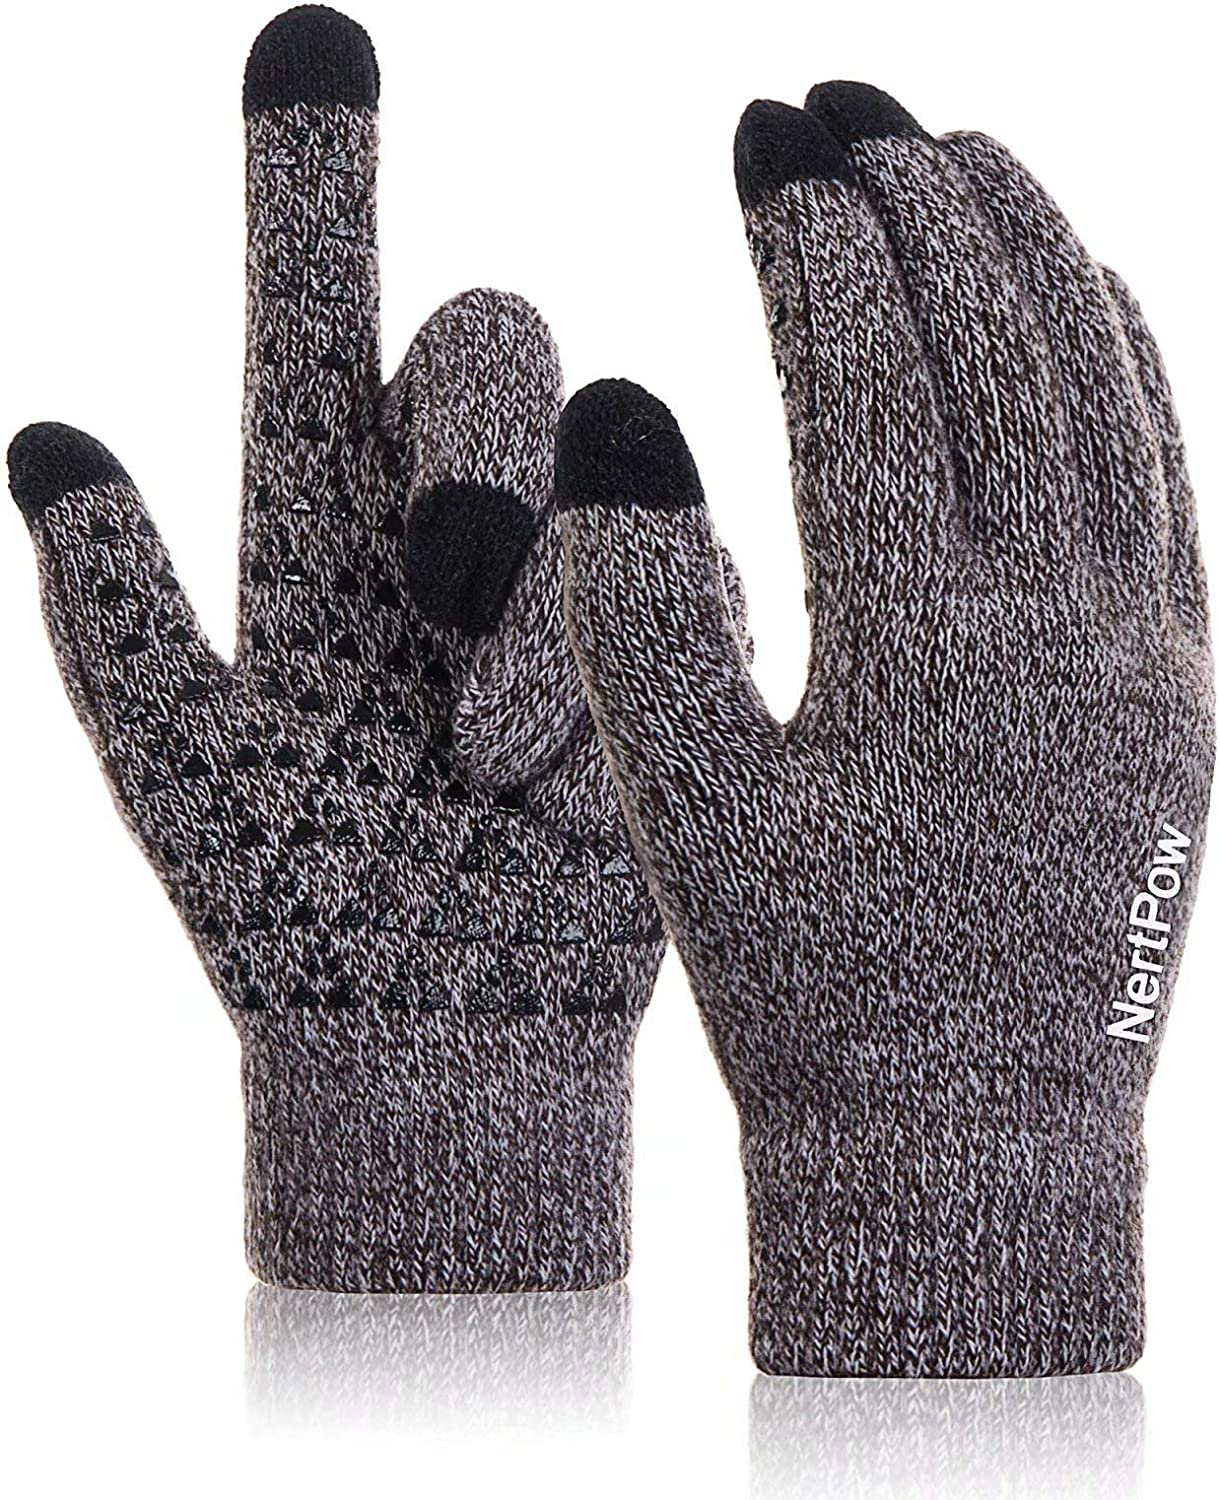 Winter Gloves For Men And Women, Warm Knit Touch Screen Texting Anti-Slip Thermal Gloves With Wool Lining (Coffee&White-L)